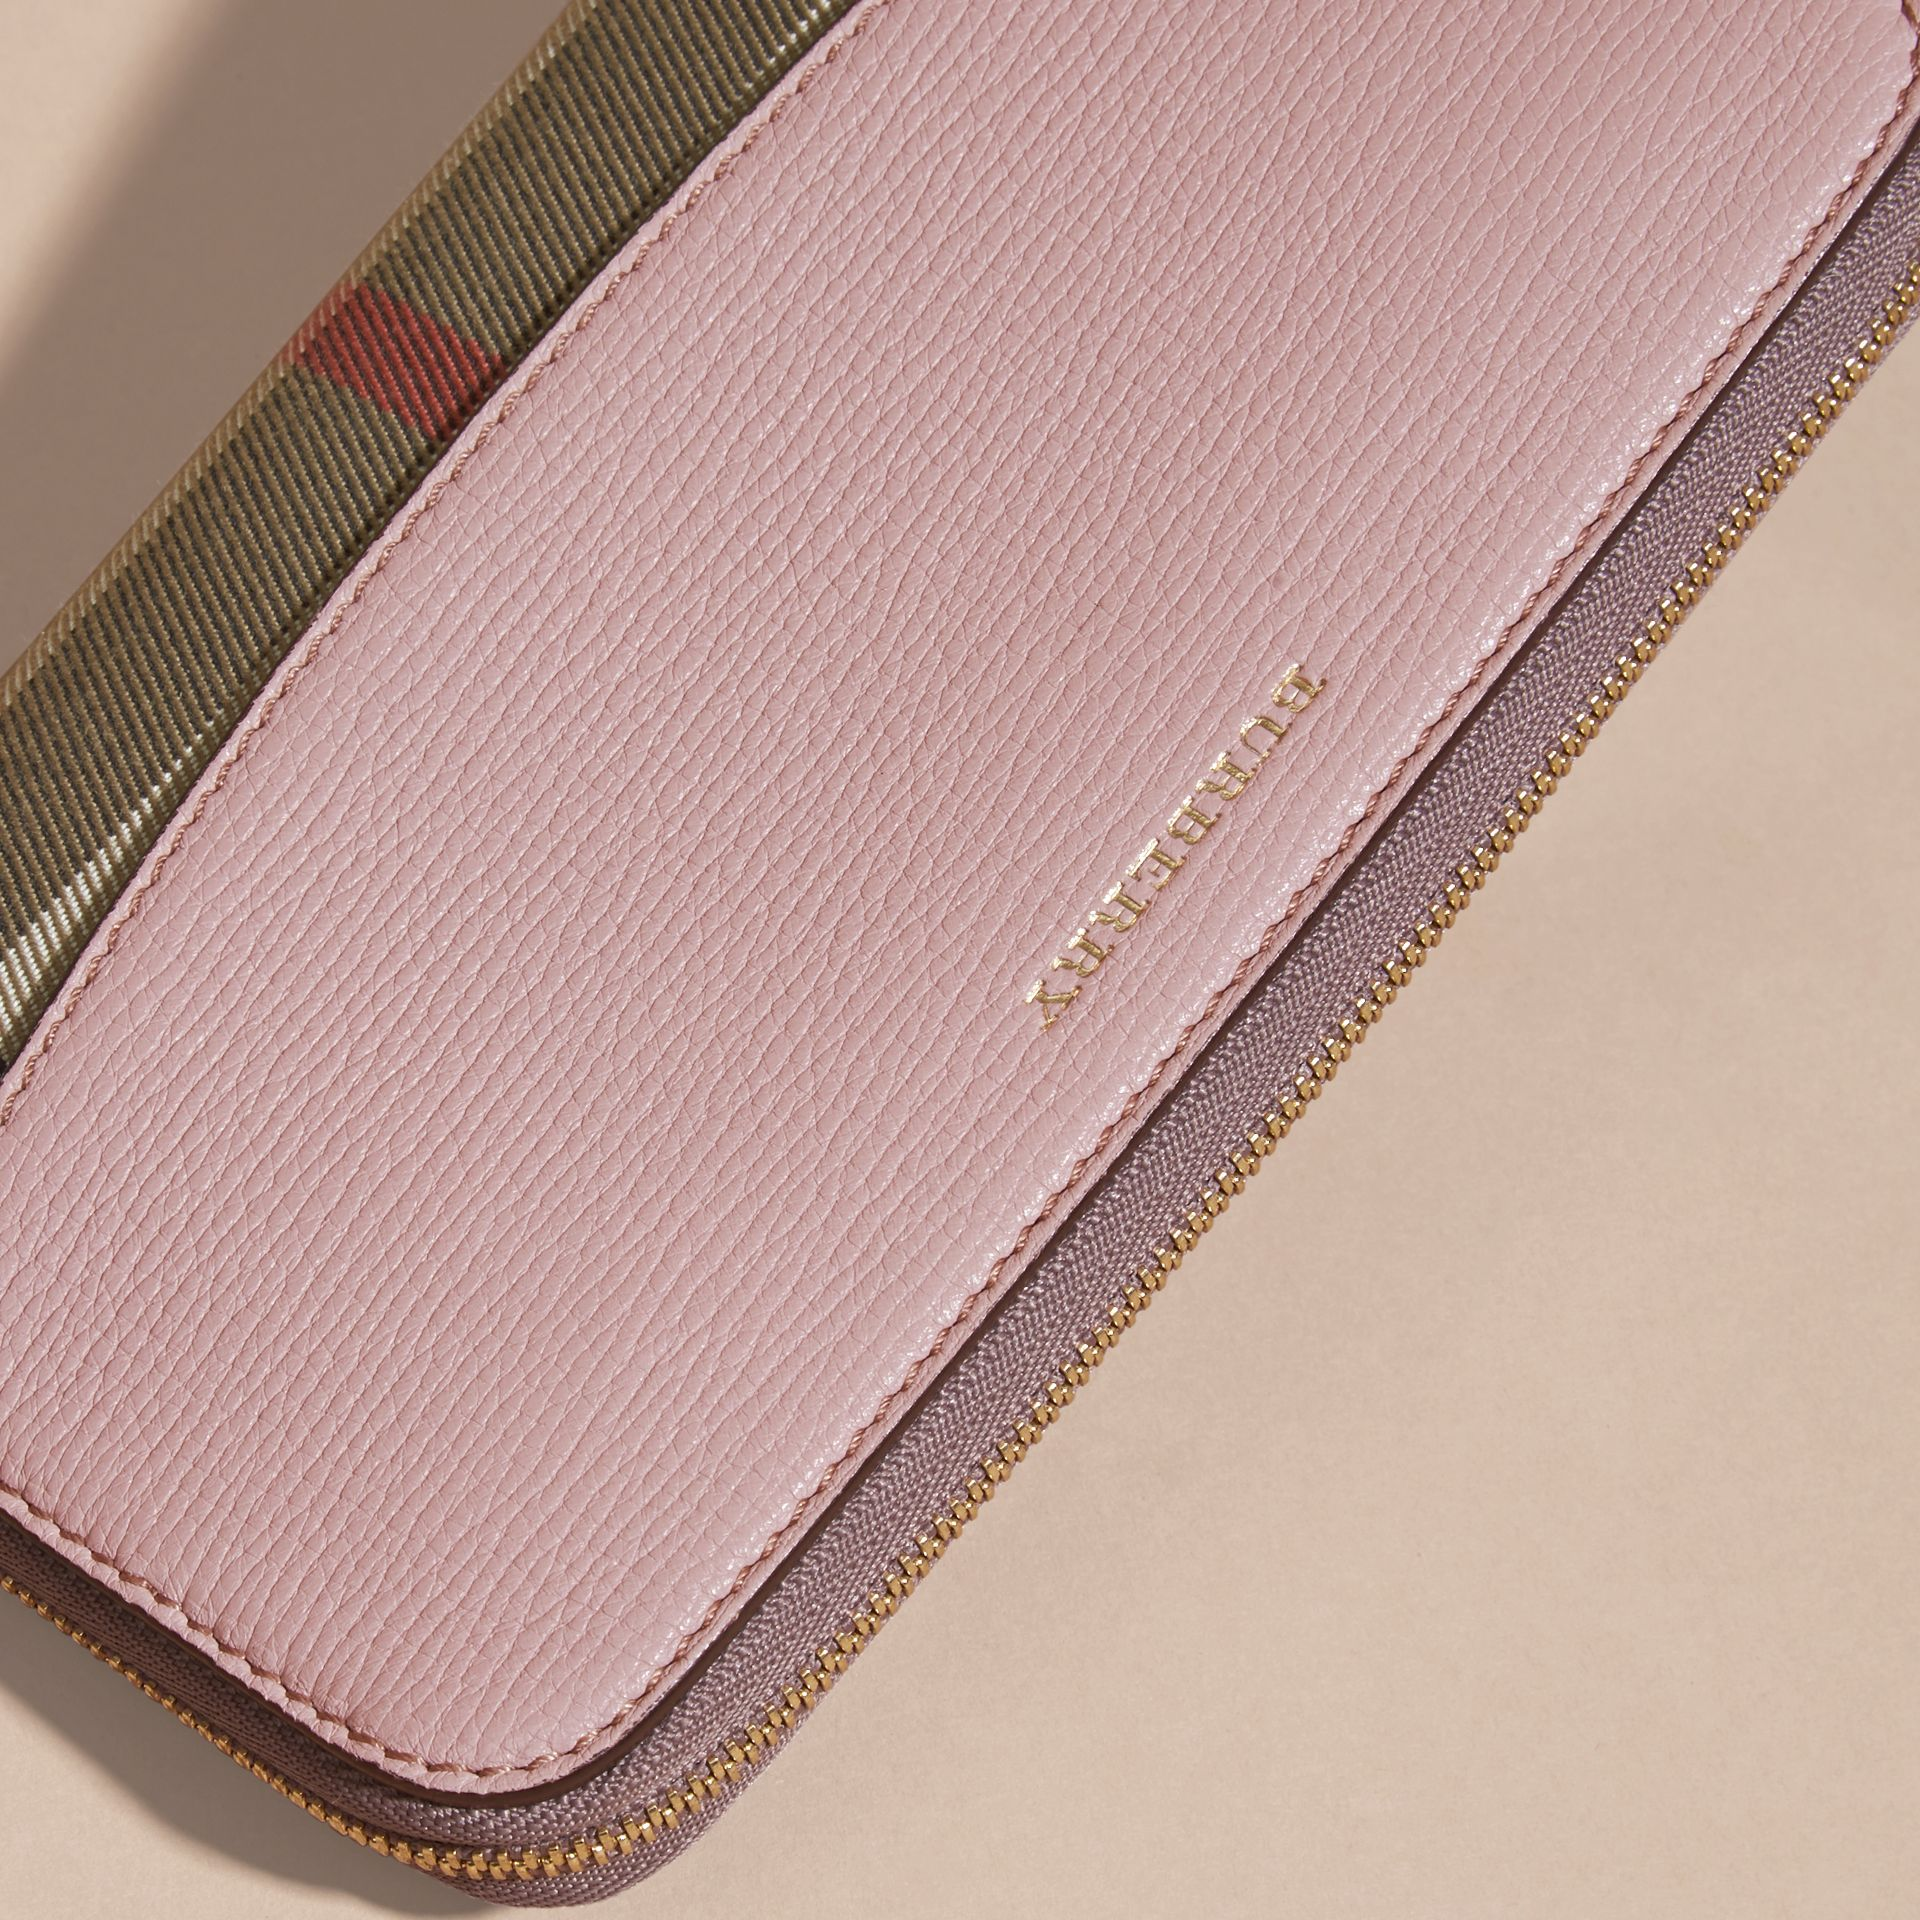 House Check and Leather Ziparound Wallet in Pale Orchid - Women | Burberry Singapore - gallery image 4